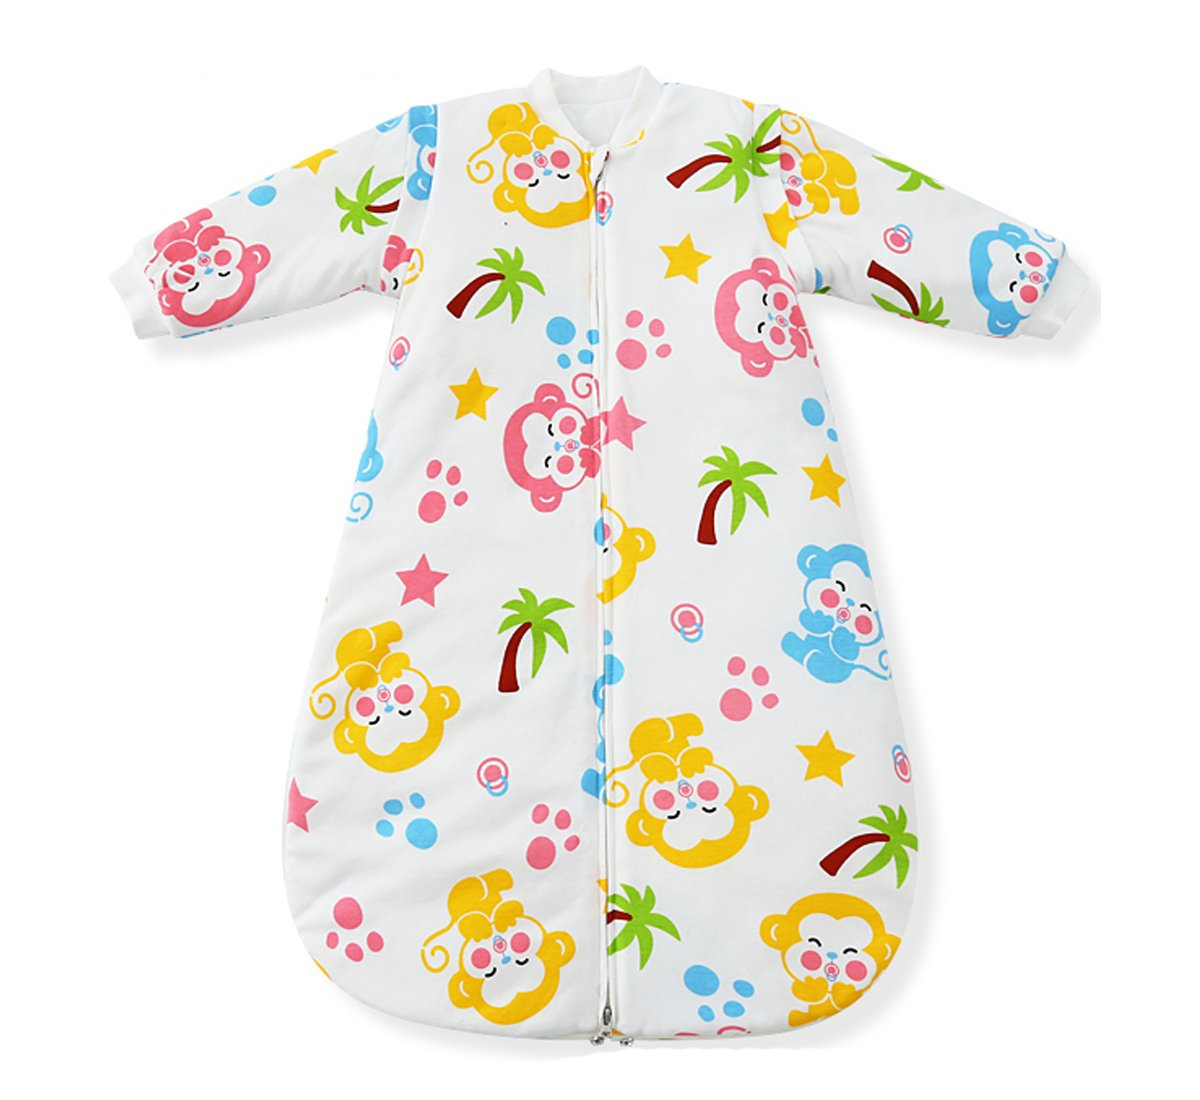 Fairy Baby Removable Long Sleeve Wearable Blanket Cartoon Sleeping Bag Approx 2.5 Tog(Fit Baby Length 35.43-43.31inch,Monkey) by Fairy Baby